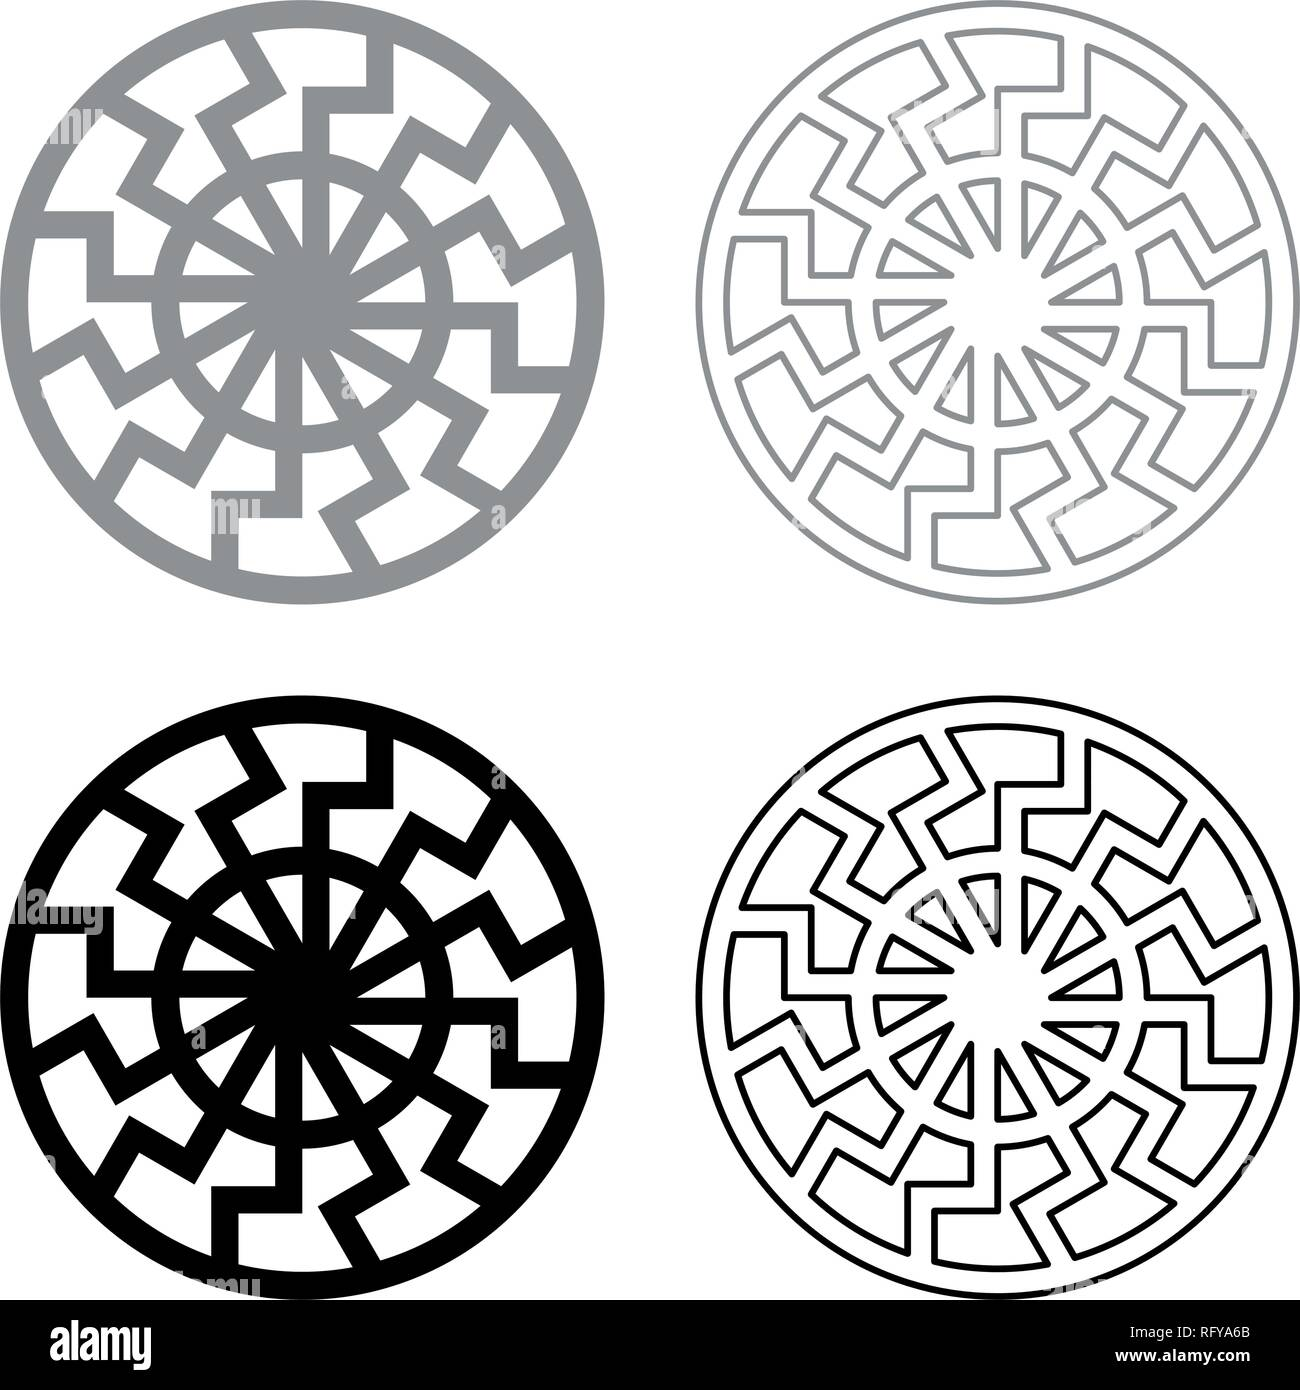 set grey black sun symbol icon set grey black color vector I outline flat style simple image - Stock Image